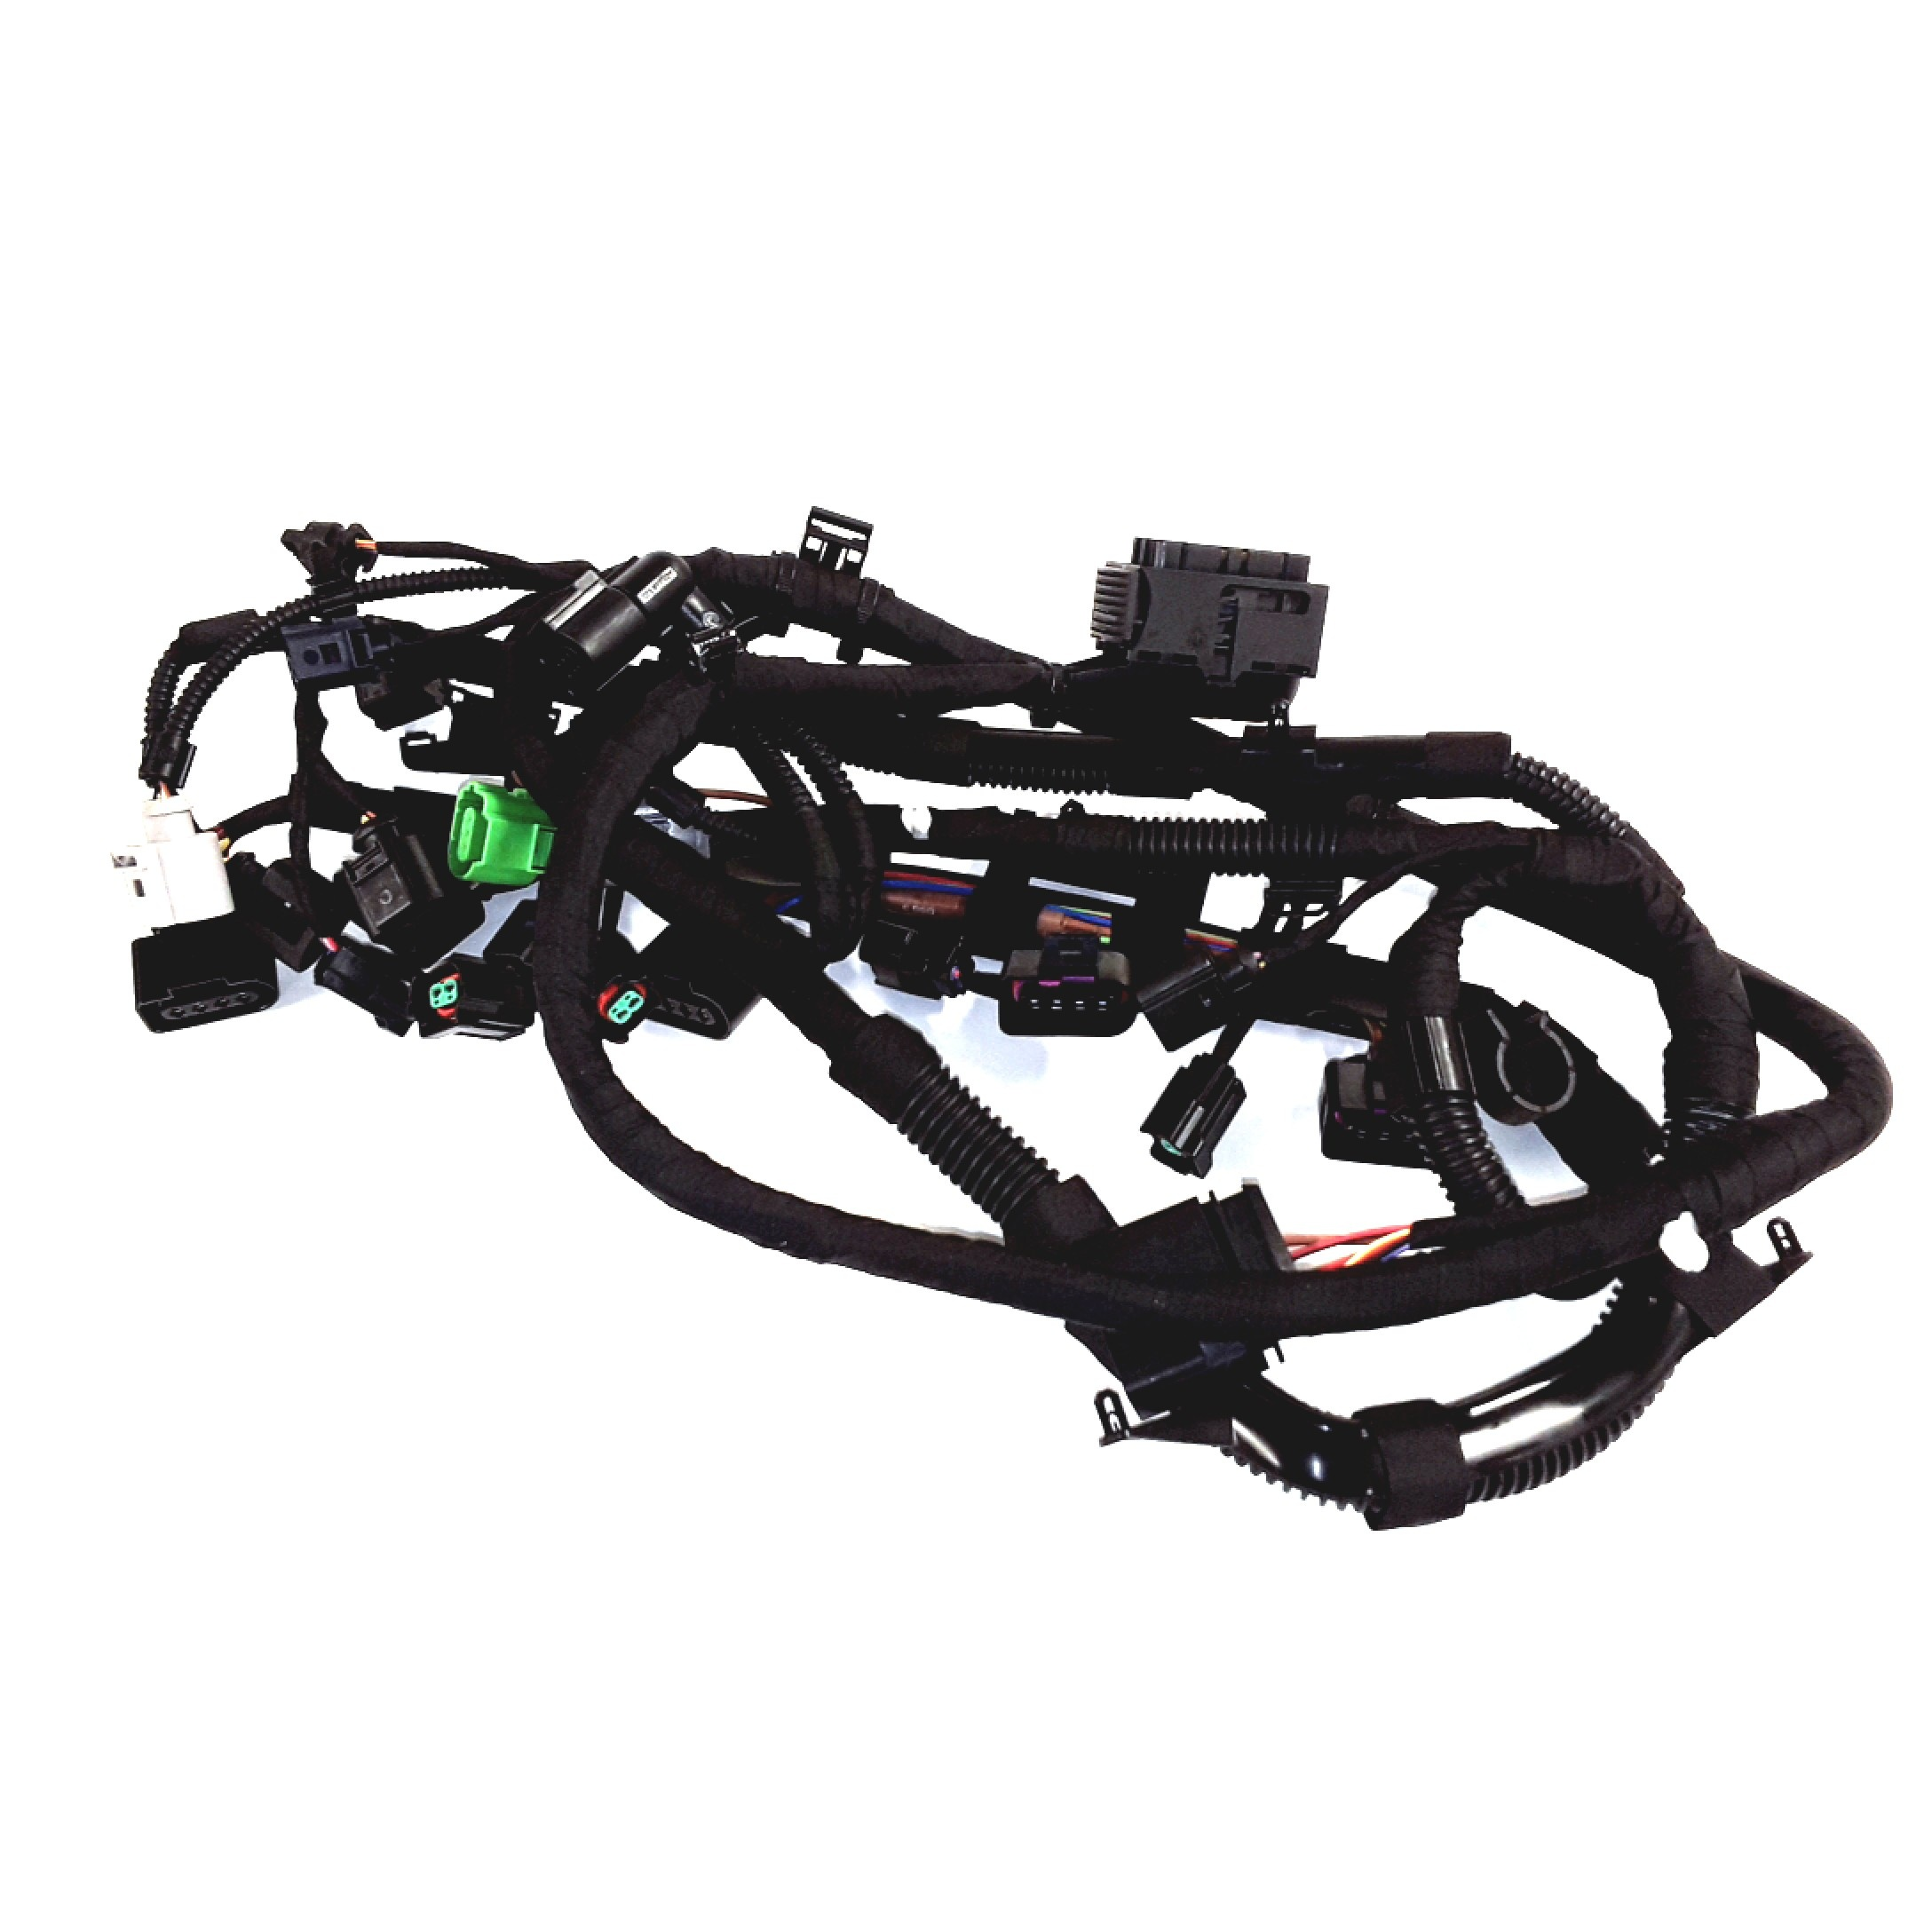 Volkswagen Beetle Engine Wiring Harness  Liter  Sulev  Sedan